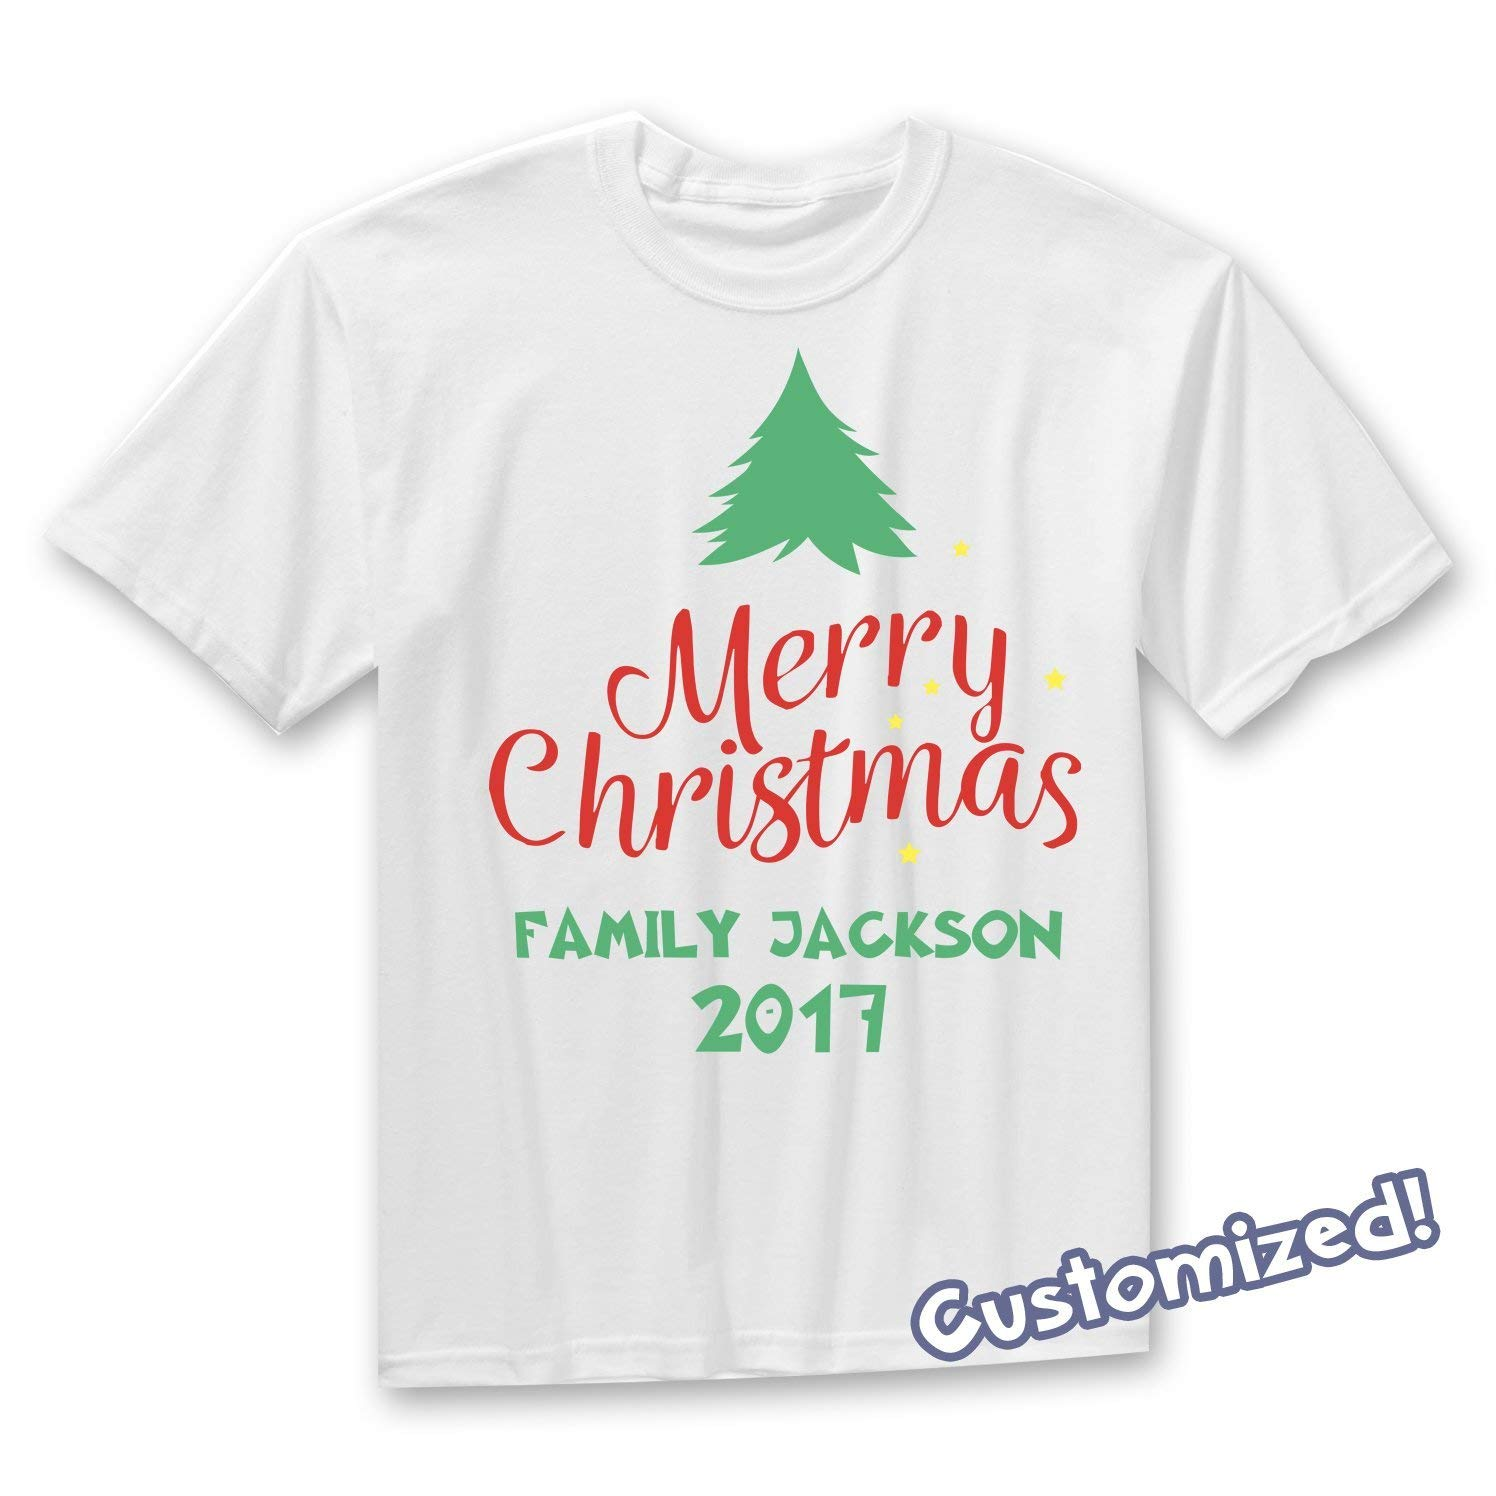 a119e817 Get Quotations · Christmas Family Shirts, Funny Christmas shirts, Xmas  Outfits, Matching Christmas Shirts Family